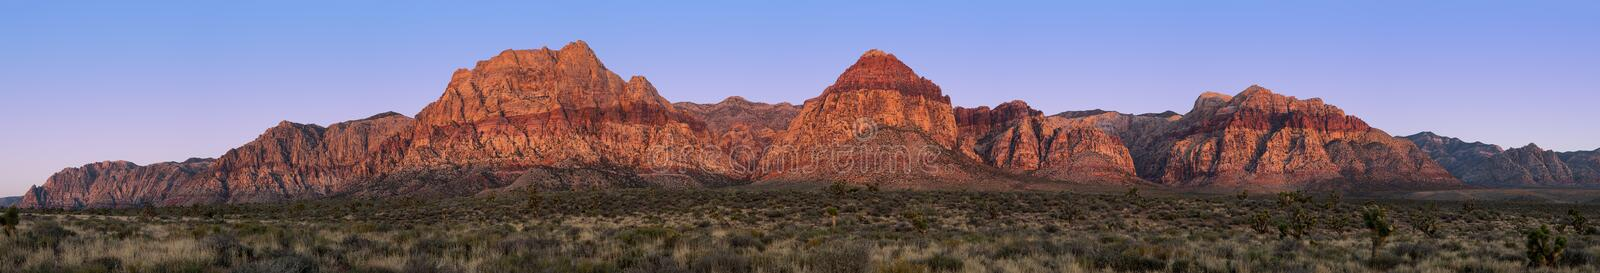 Red Rock Canyon pano. Panorama of Red Rock Canyon, Nevada, USA, at sunrise with yacca and Joshua trees in the foreground royalty free stock images